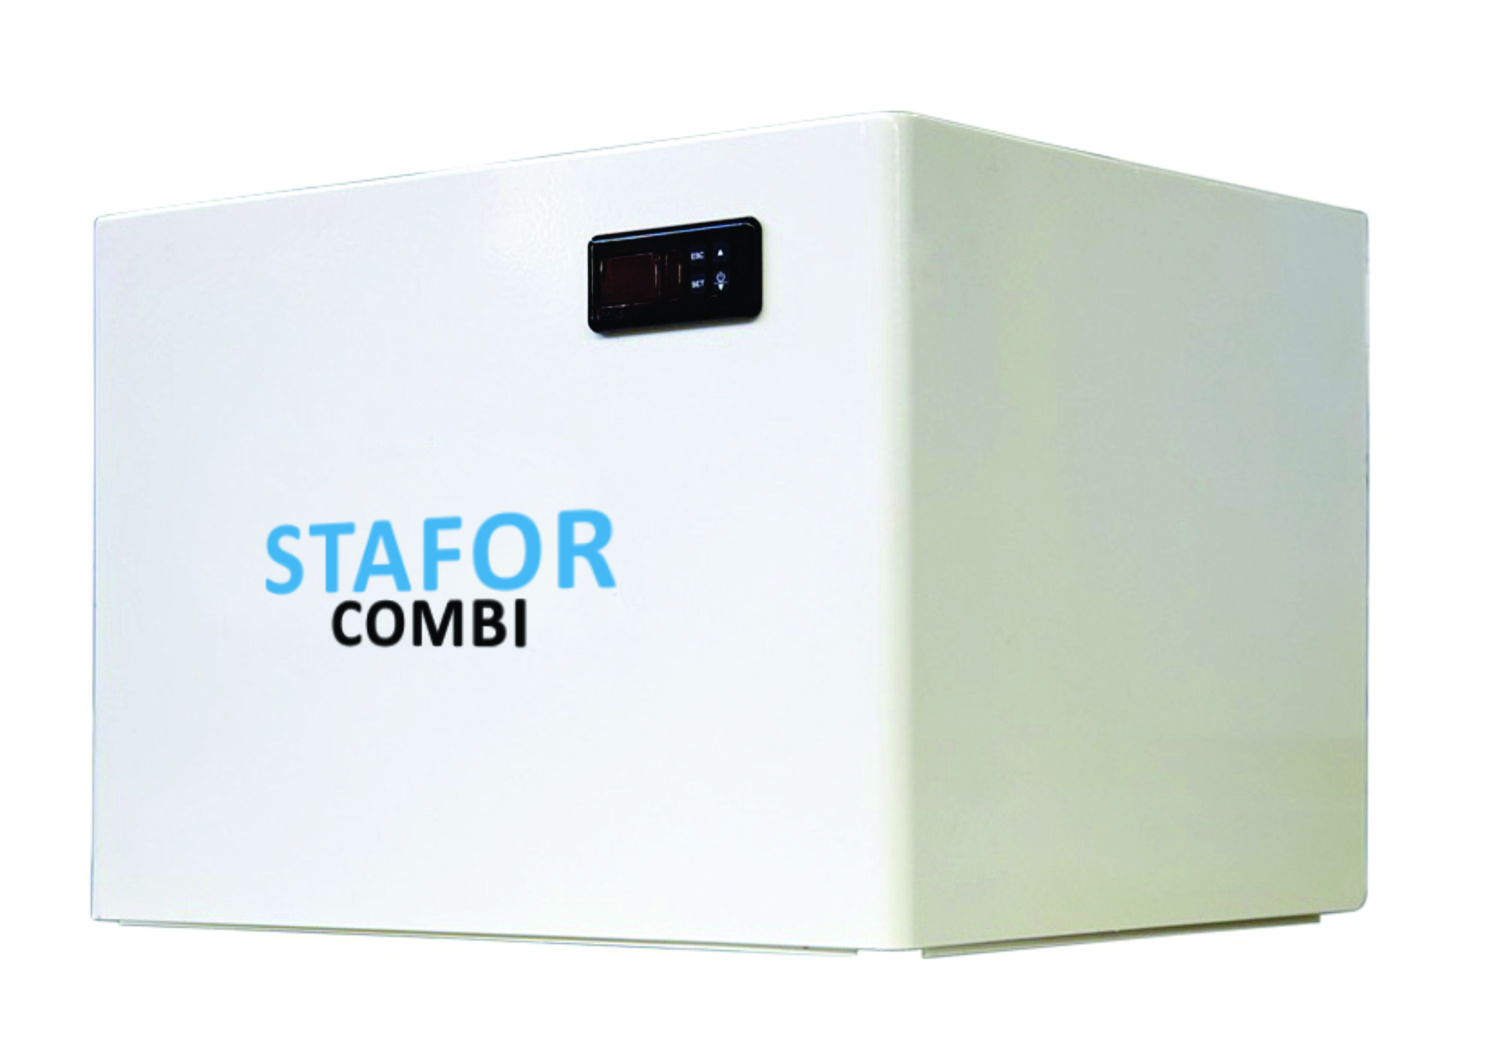 Thermodynamic unit STAFOR COMBI 200DHW